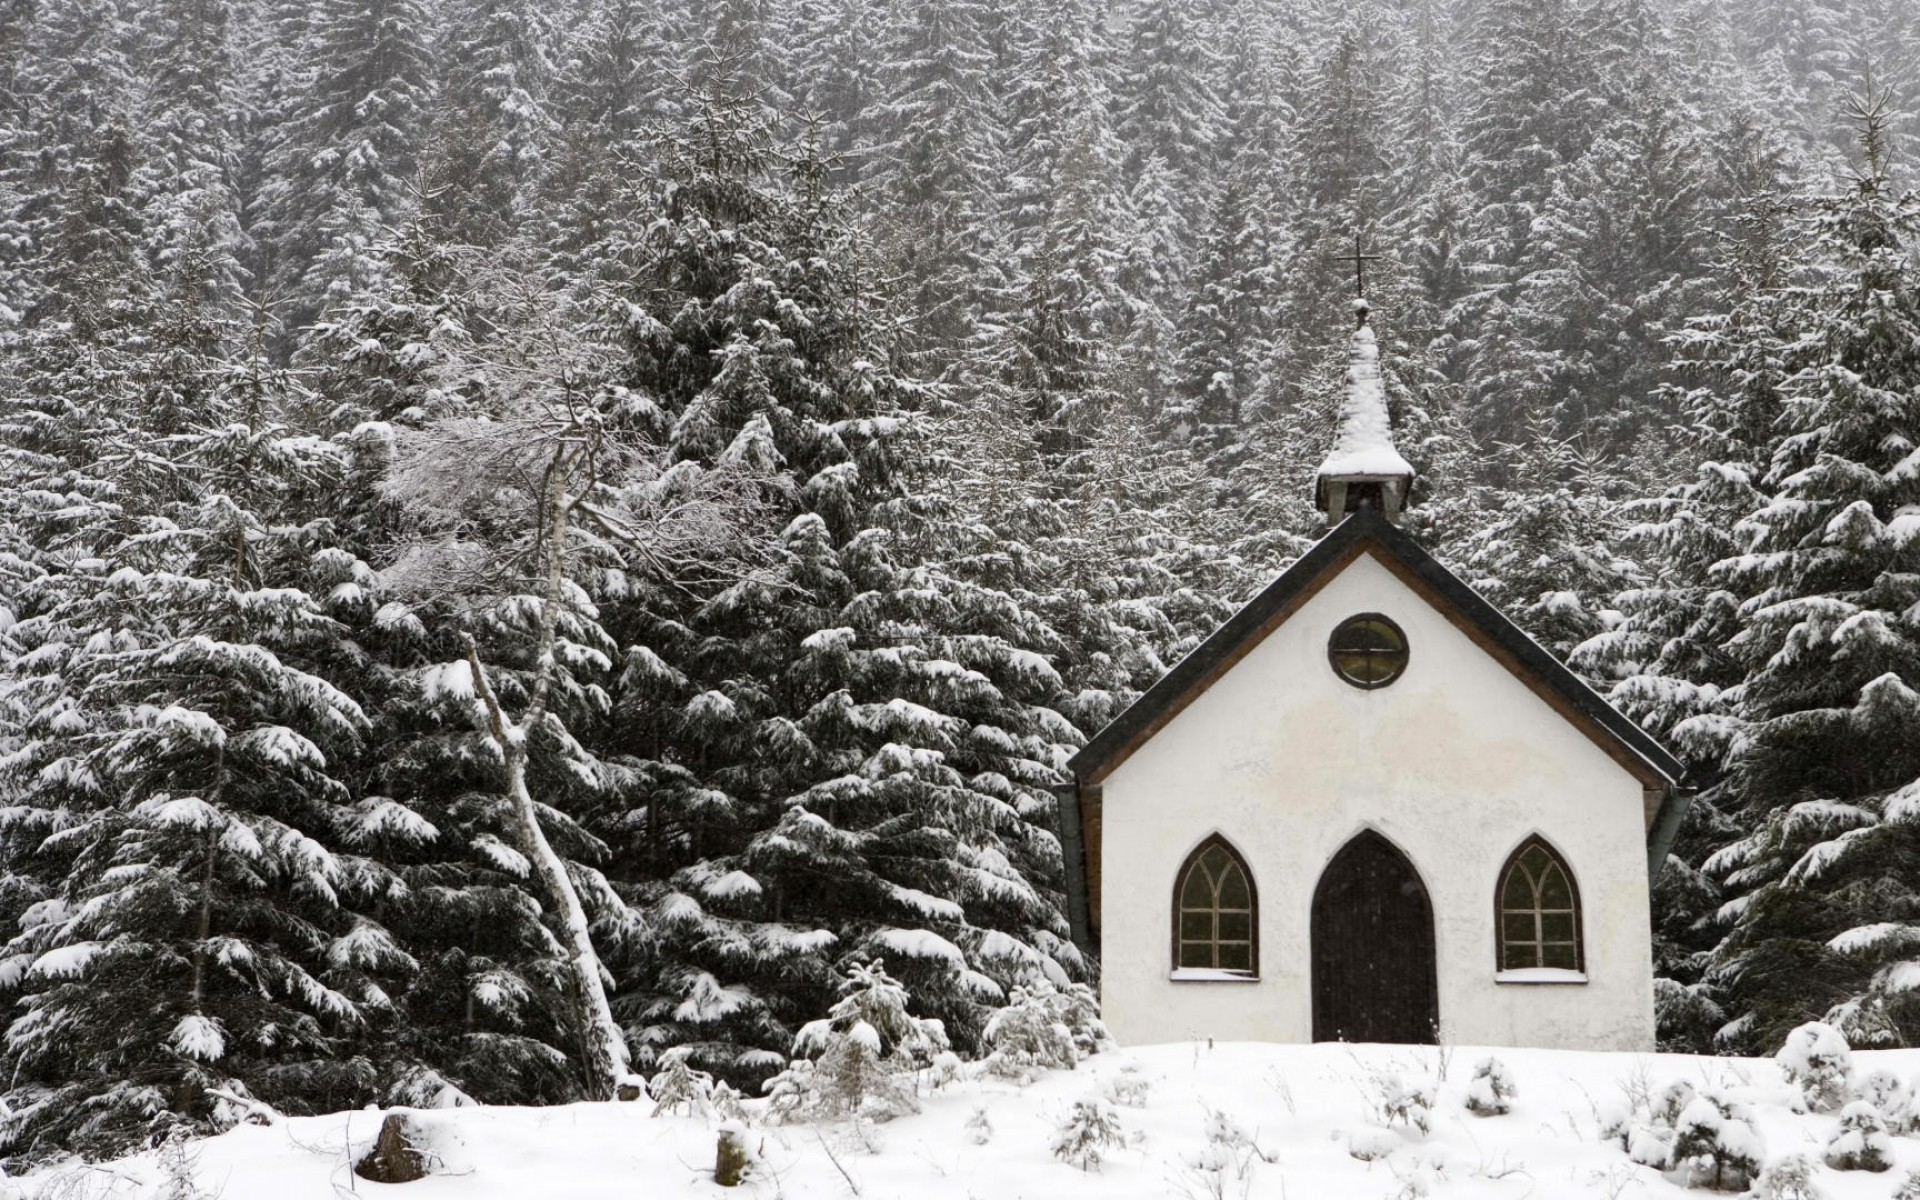 snowy church and xmas - photo #22